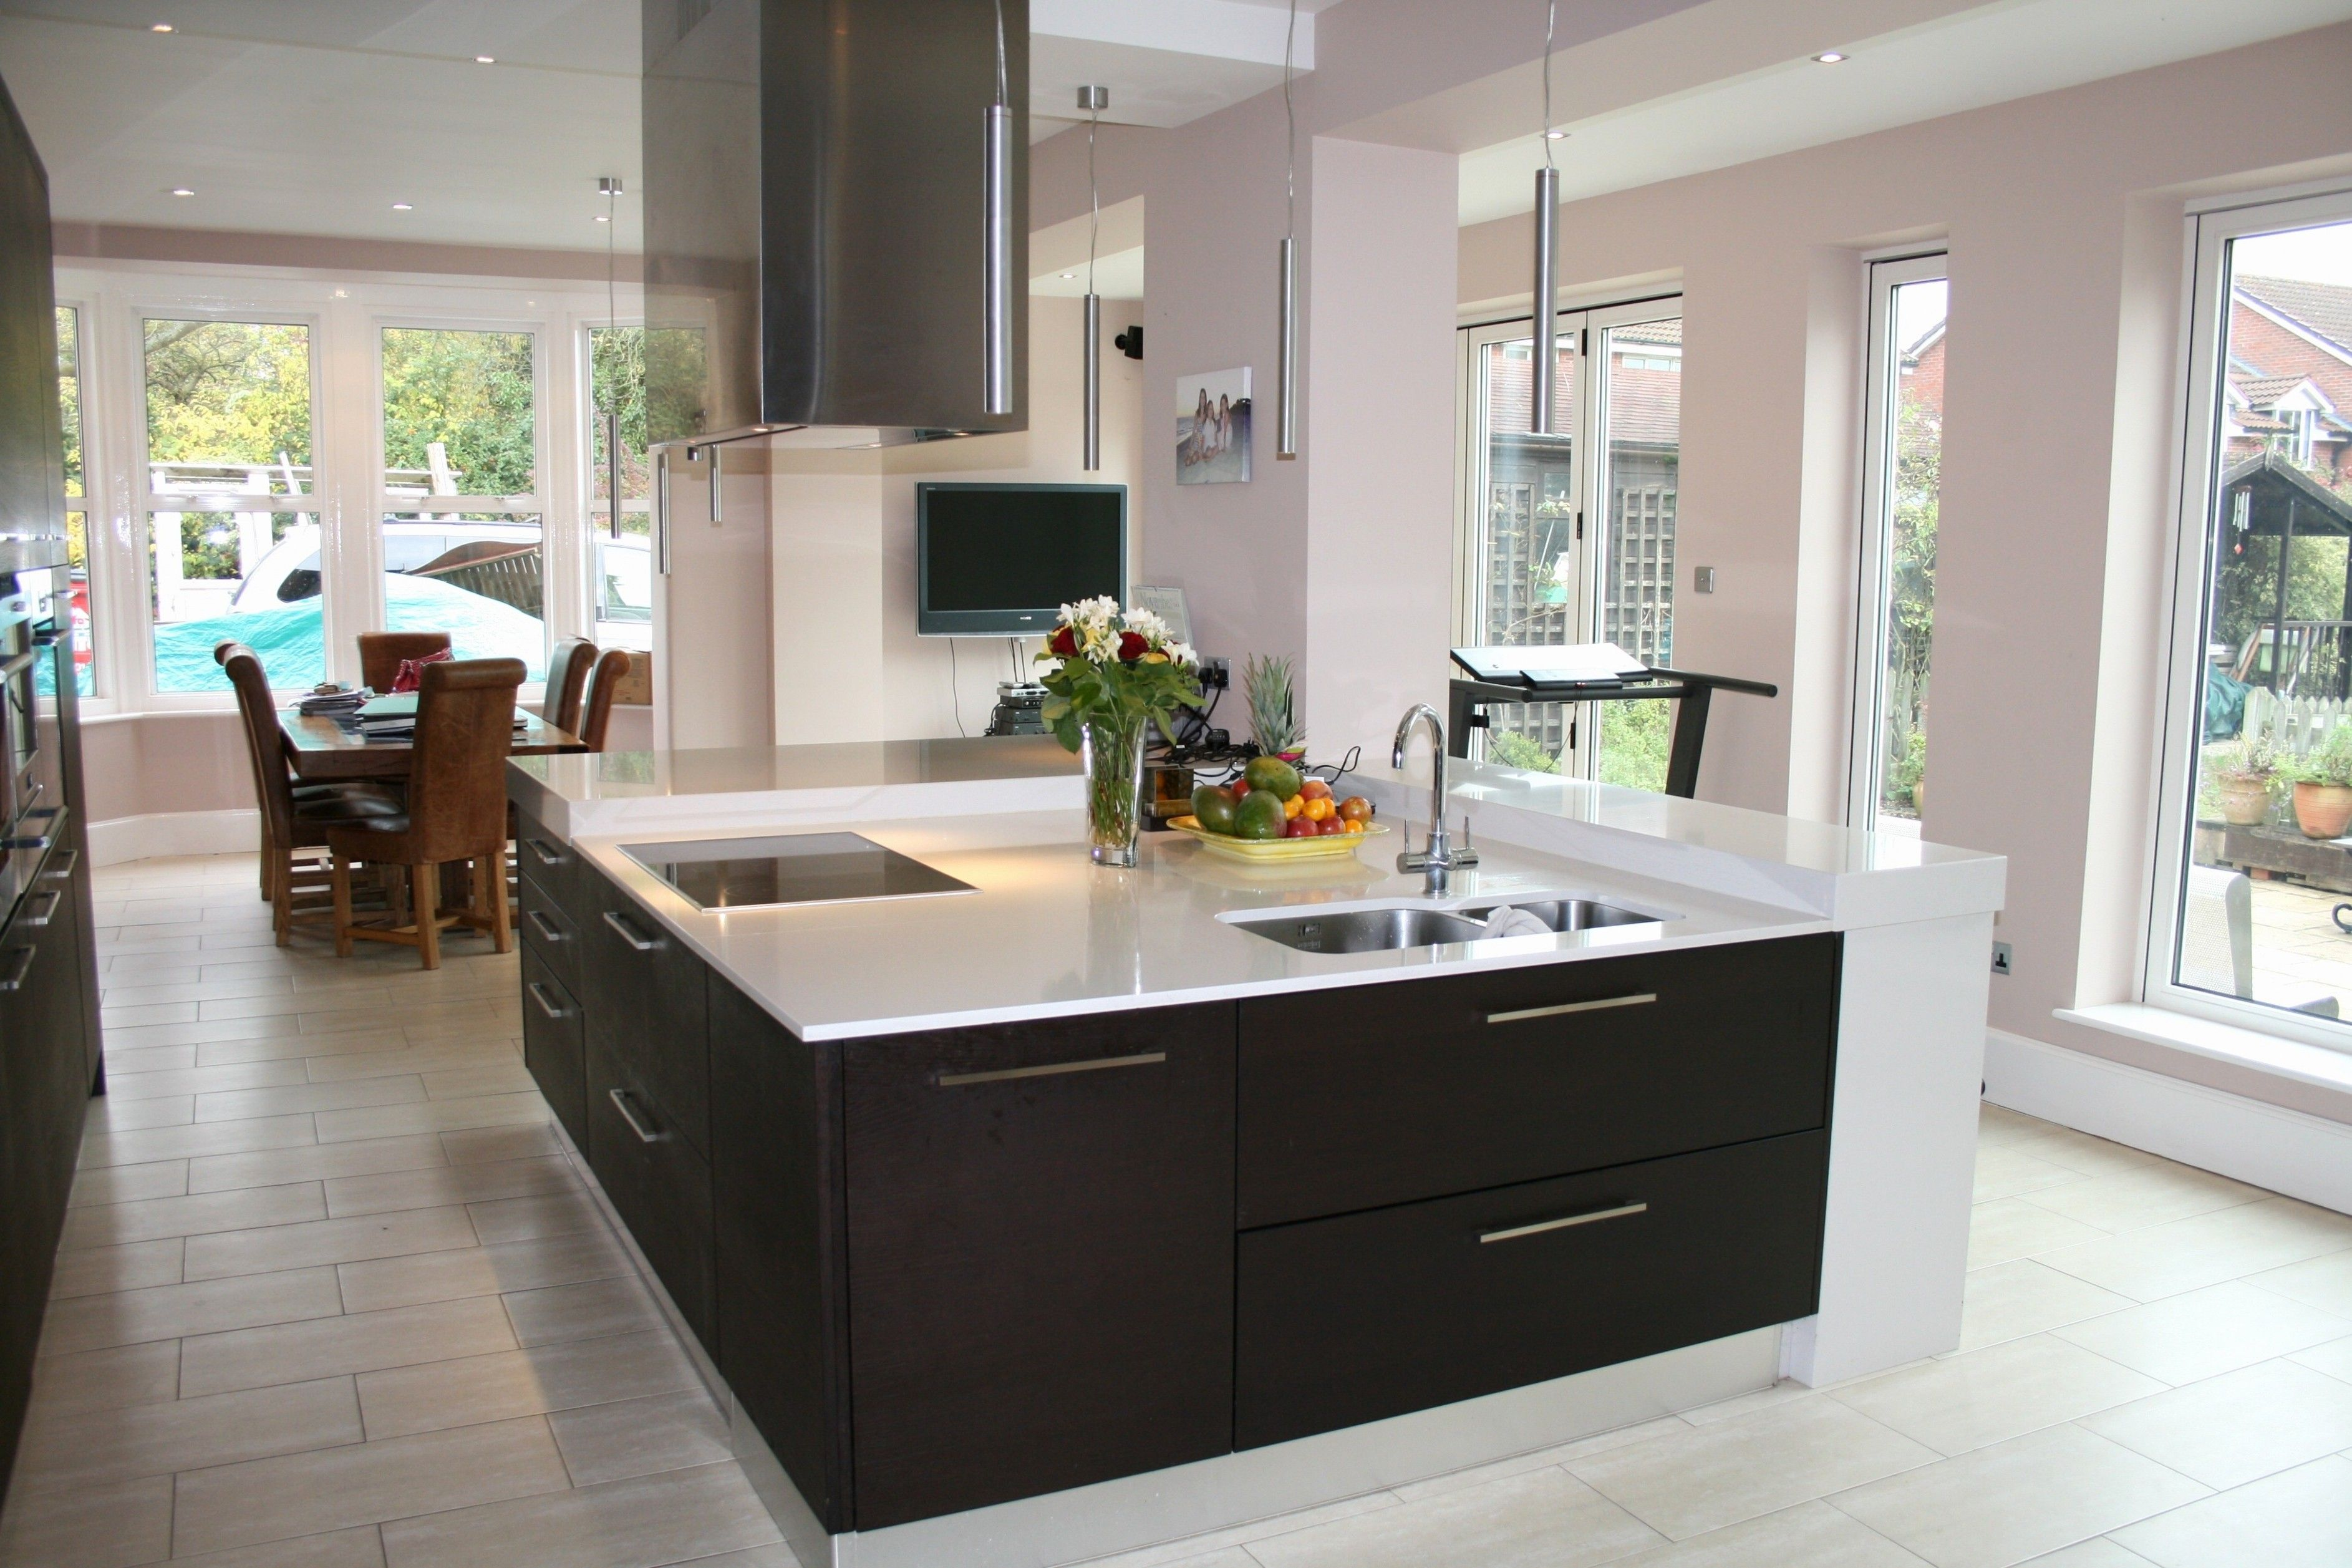 20 Lovely Summer Kitchens Kitchen Island With Sink Small